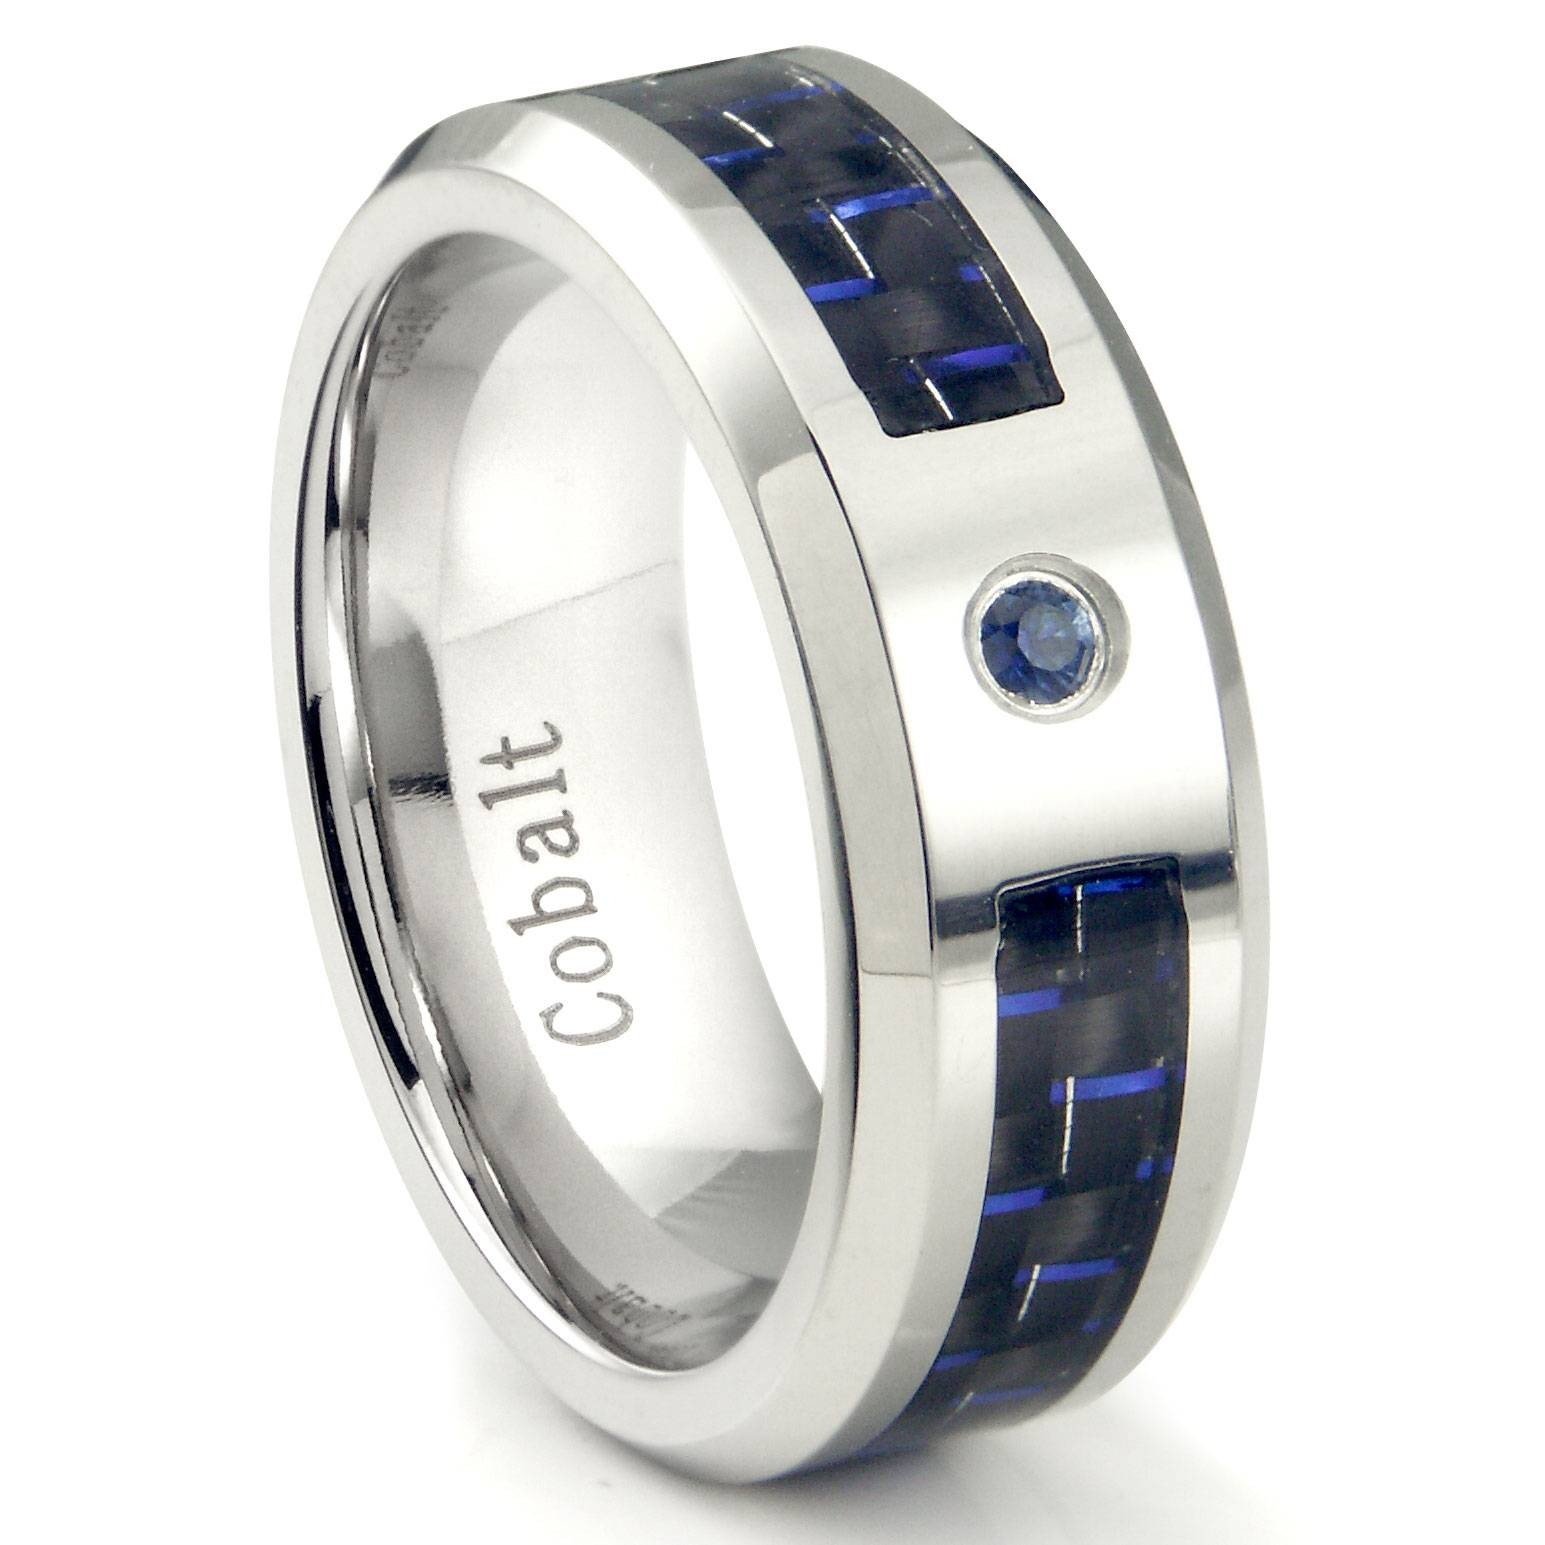 Cobalt Chrome 8Mm Blue Sapphire & Blue Carbon Fiber Inlay Wedding Regarding Blue Wedding Bands For Men (View 8 of 15)